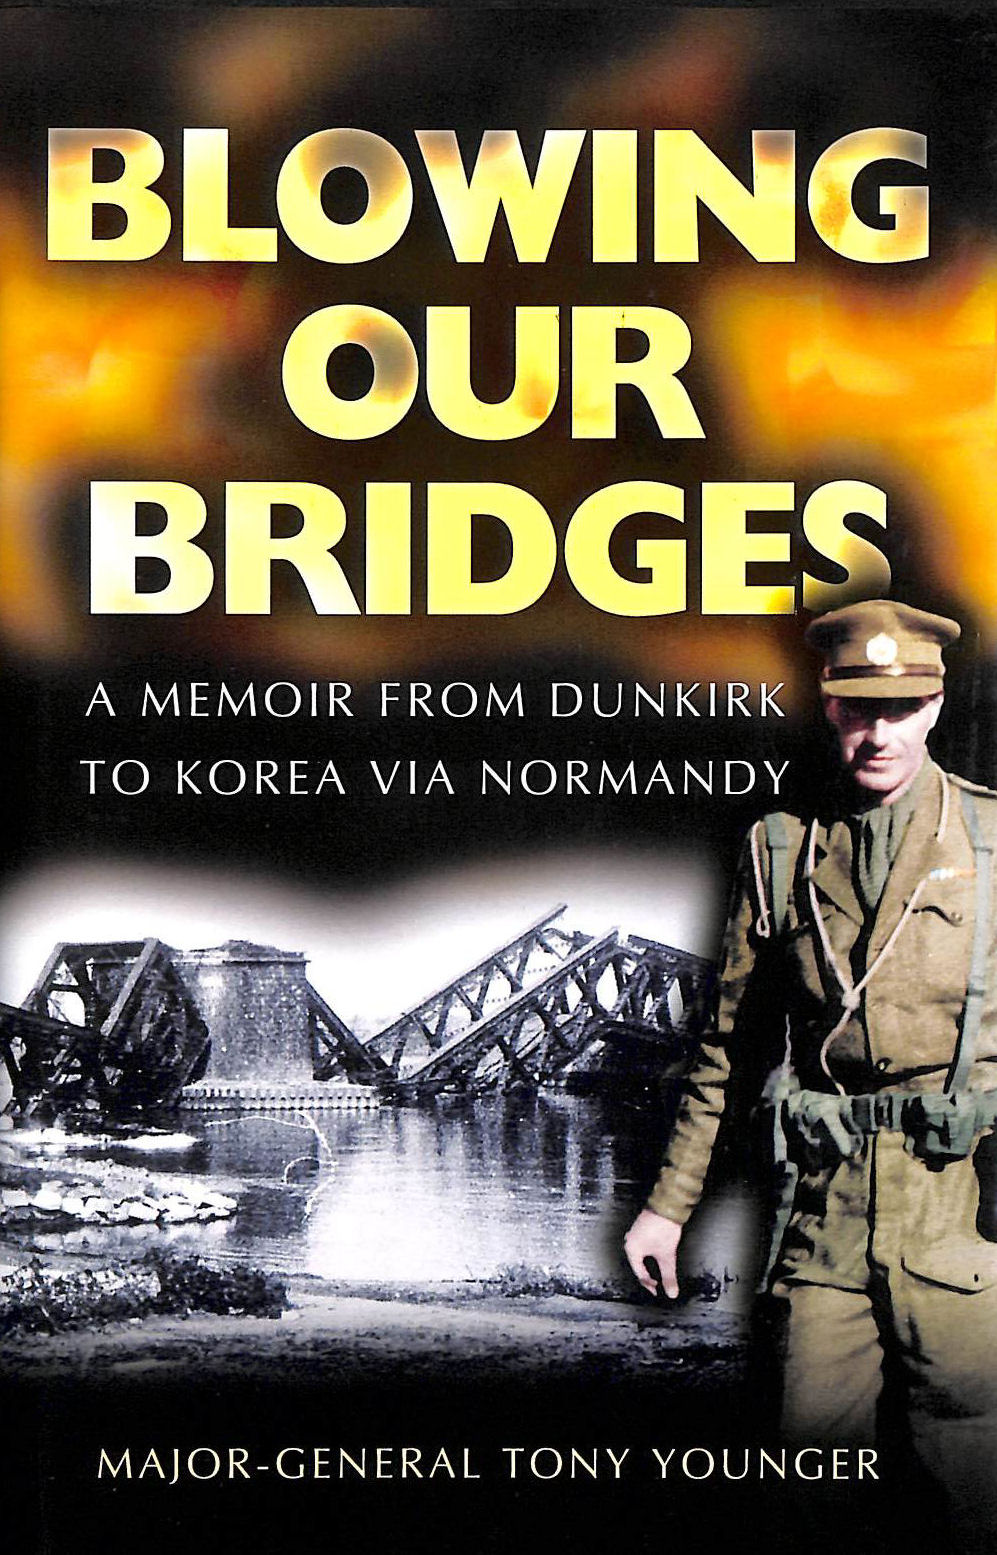 Image for Blowing Our Bridges: a Memoir from Dunkirk to Korea Via Normandy